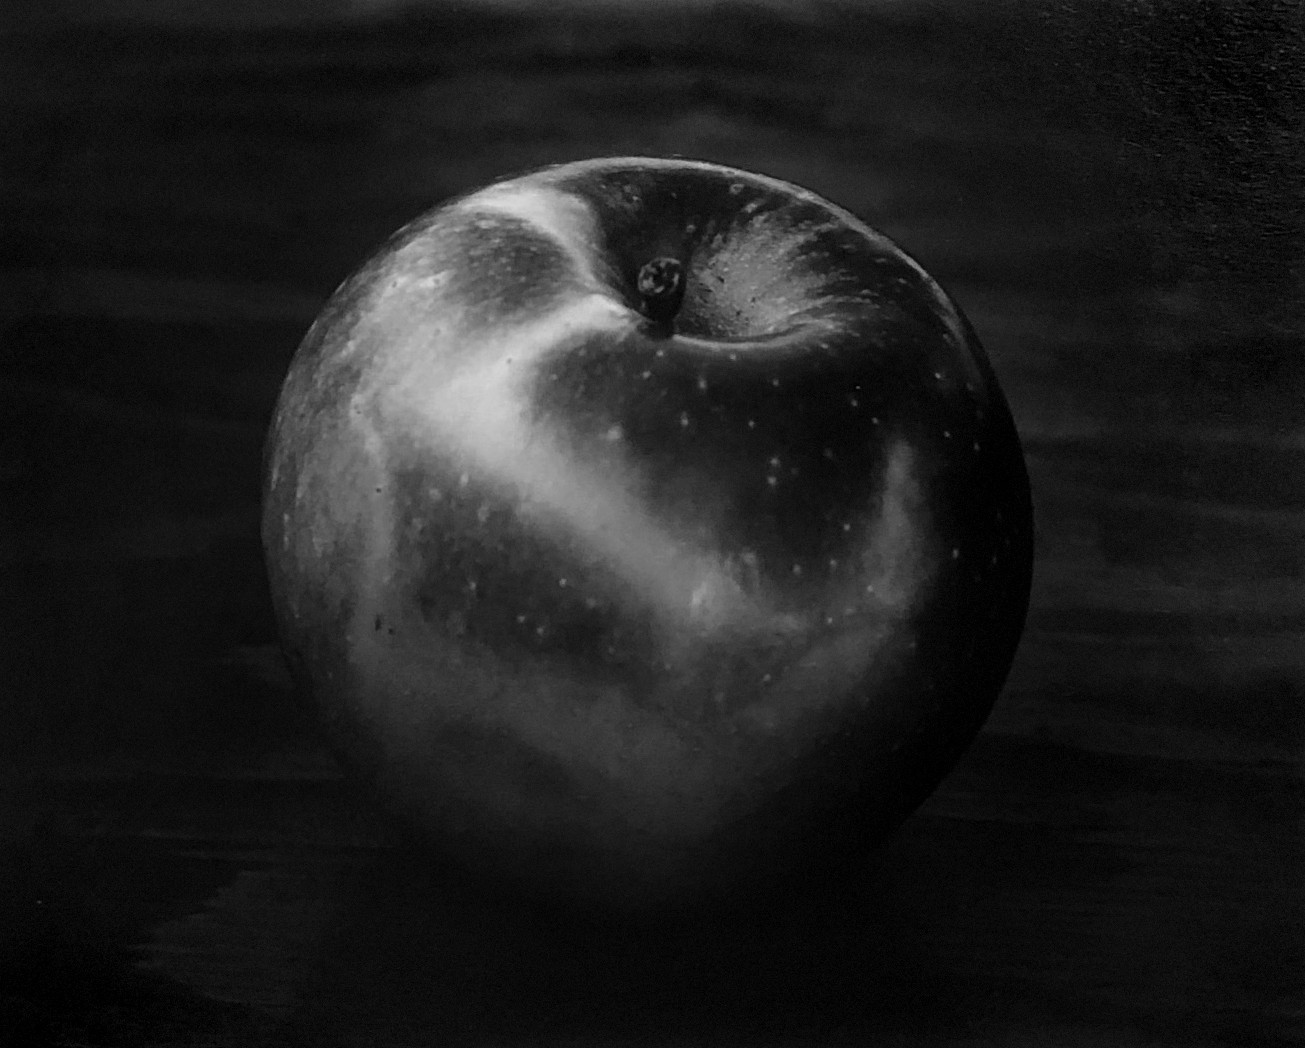 paul caponigro's image of an apple, winthrop, massachessettes.